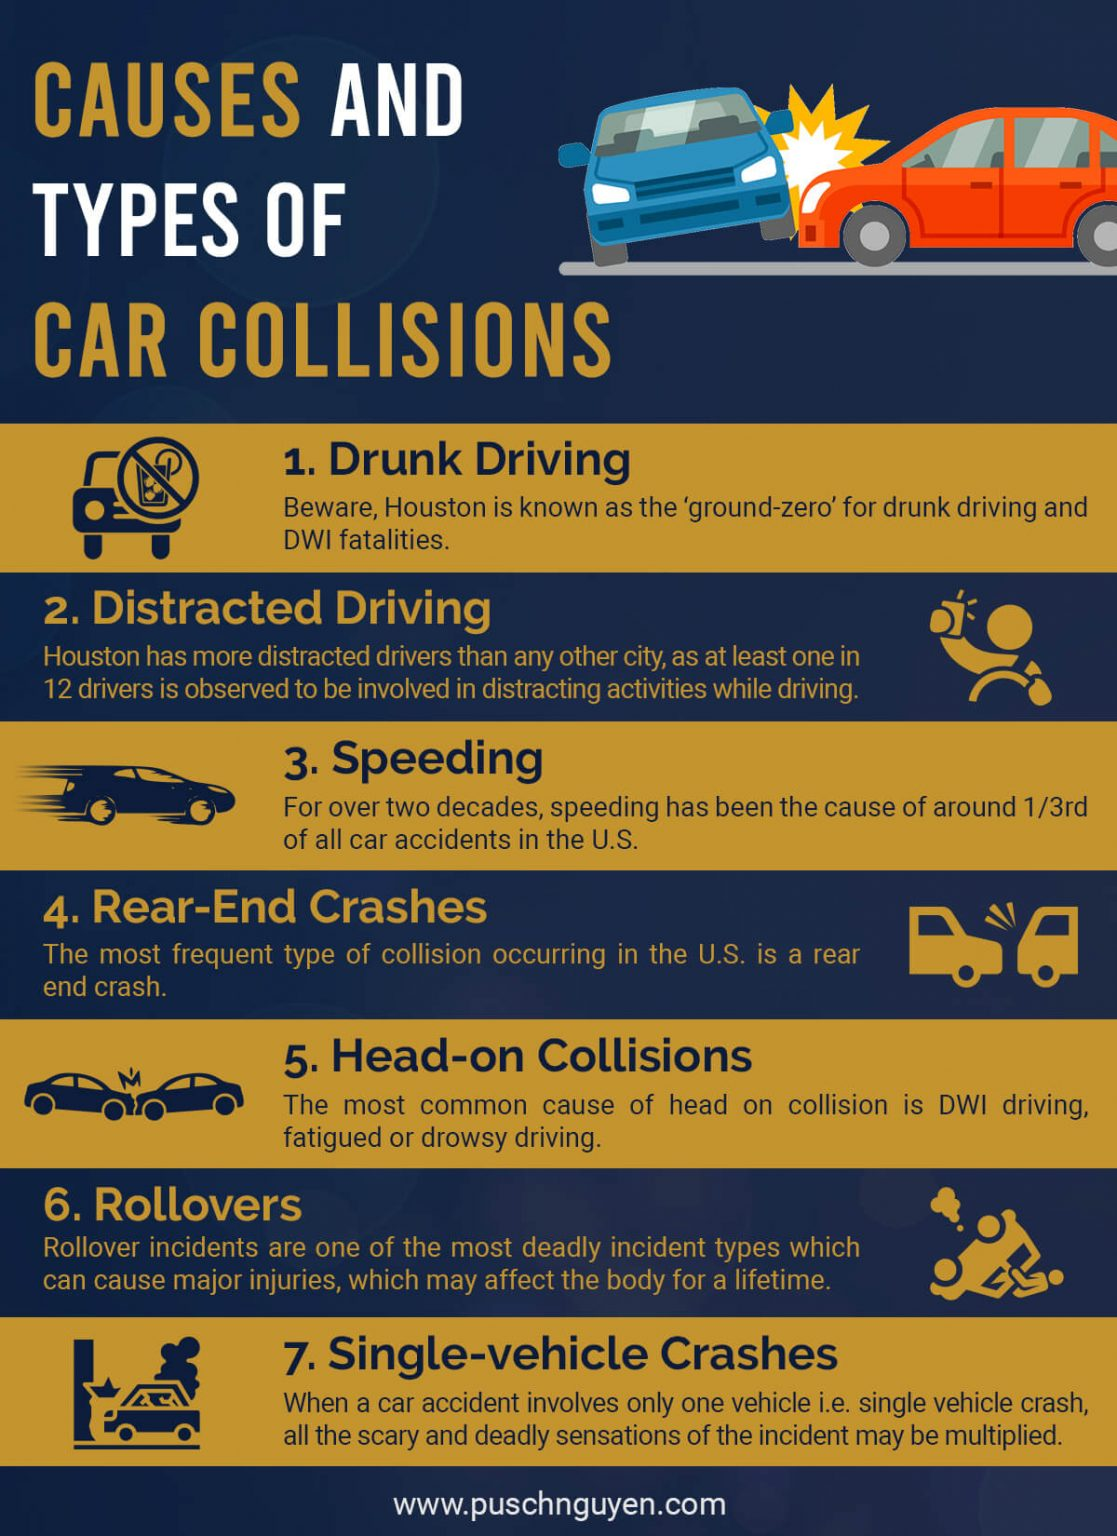 car collisions in Houston are very common and here are a few reasons why